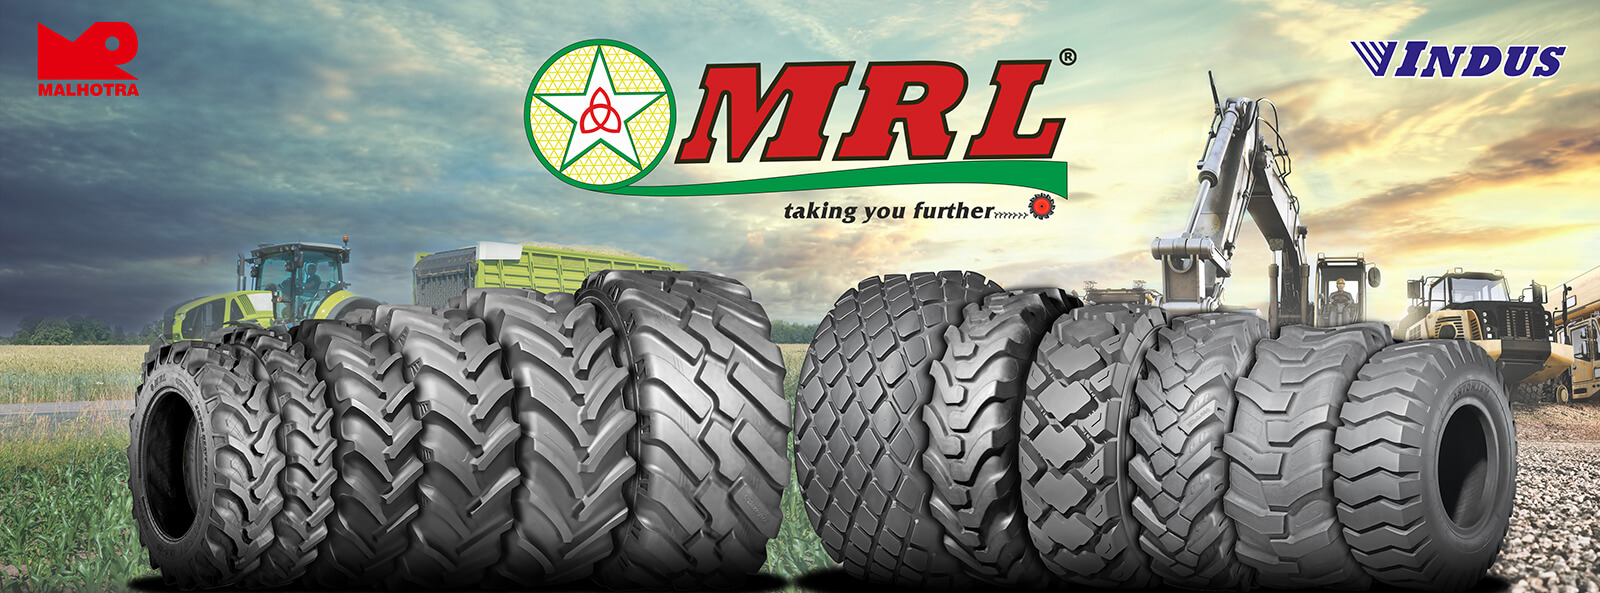 india tyres industry